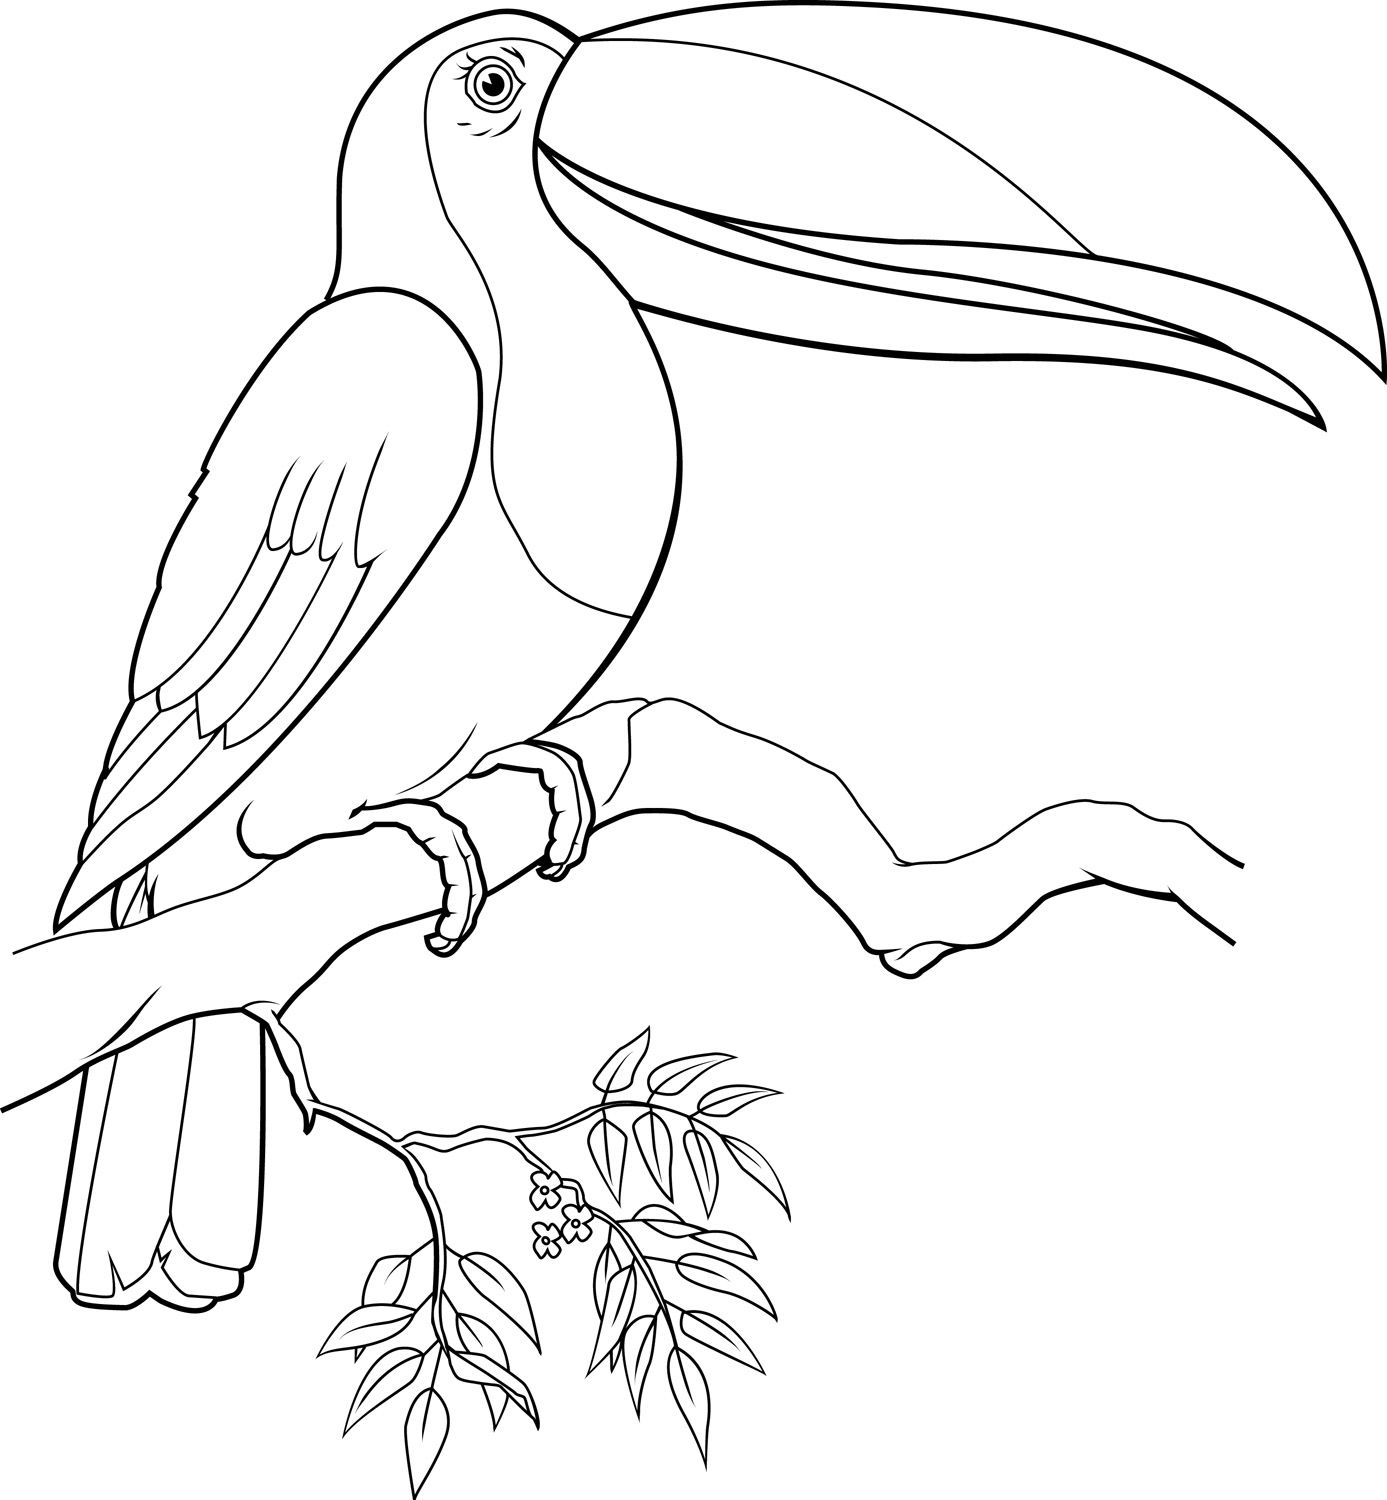 Coloring Page Of A Toucan Bird Coloring Pages